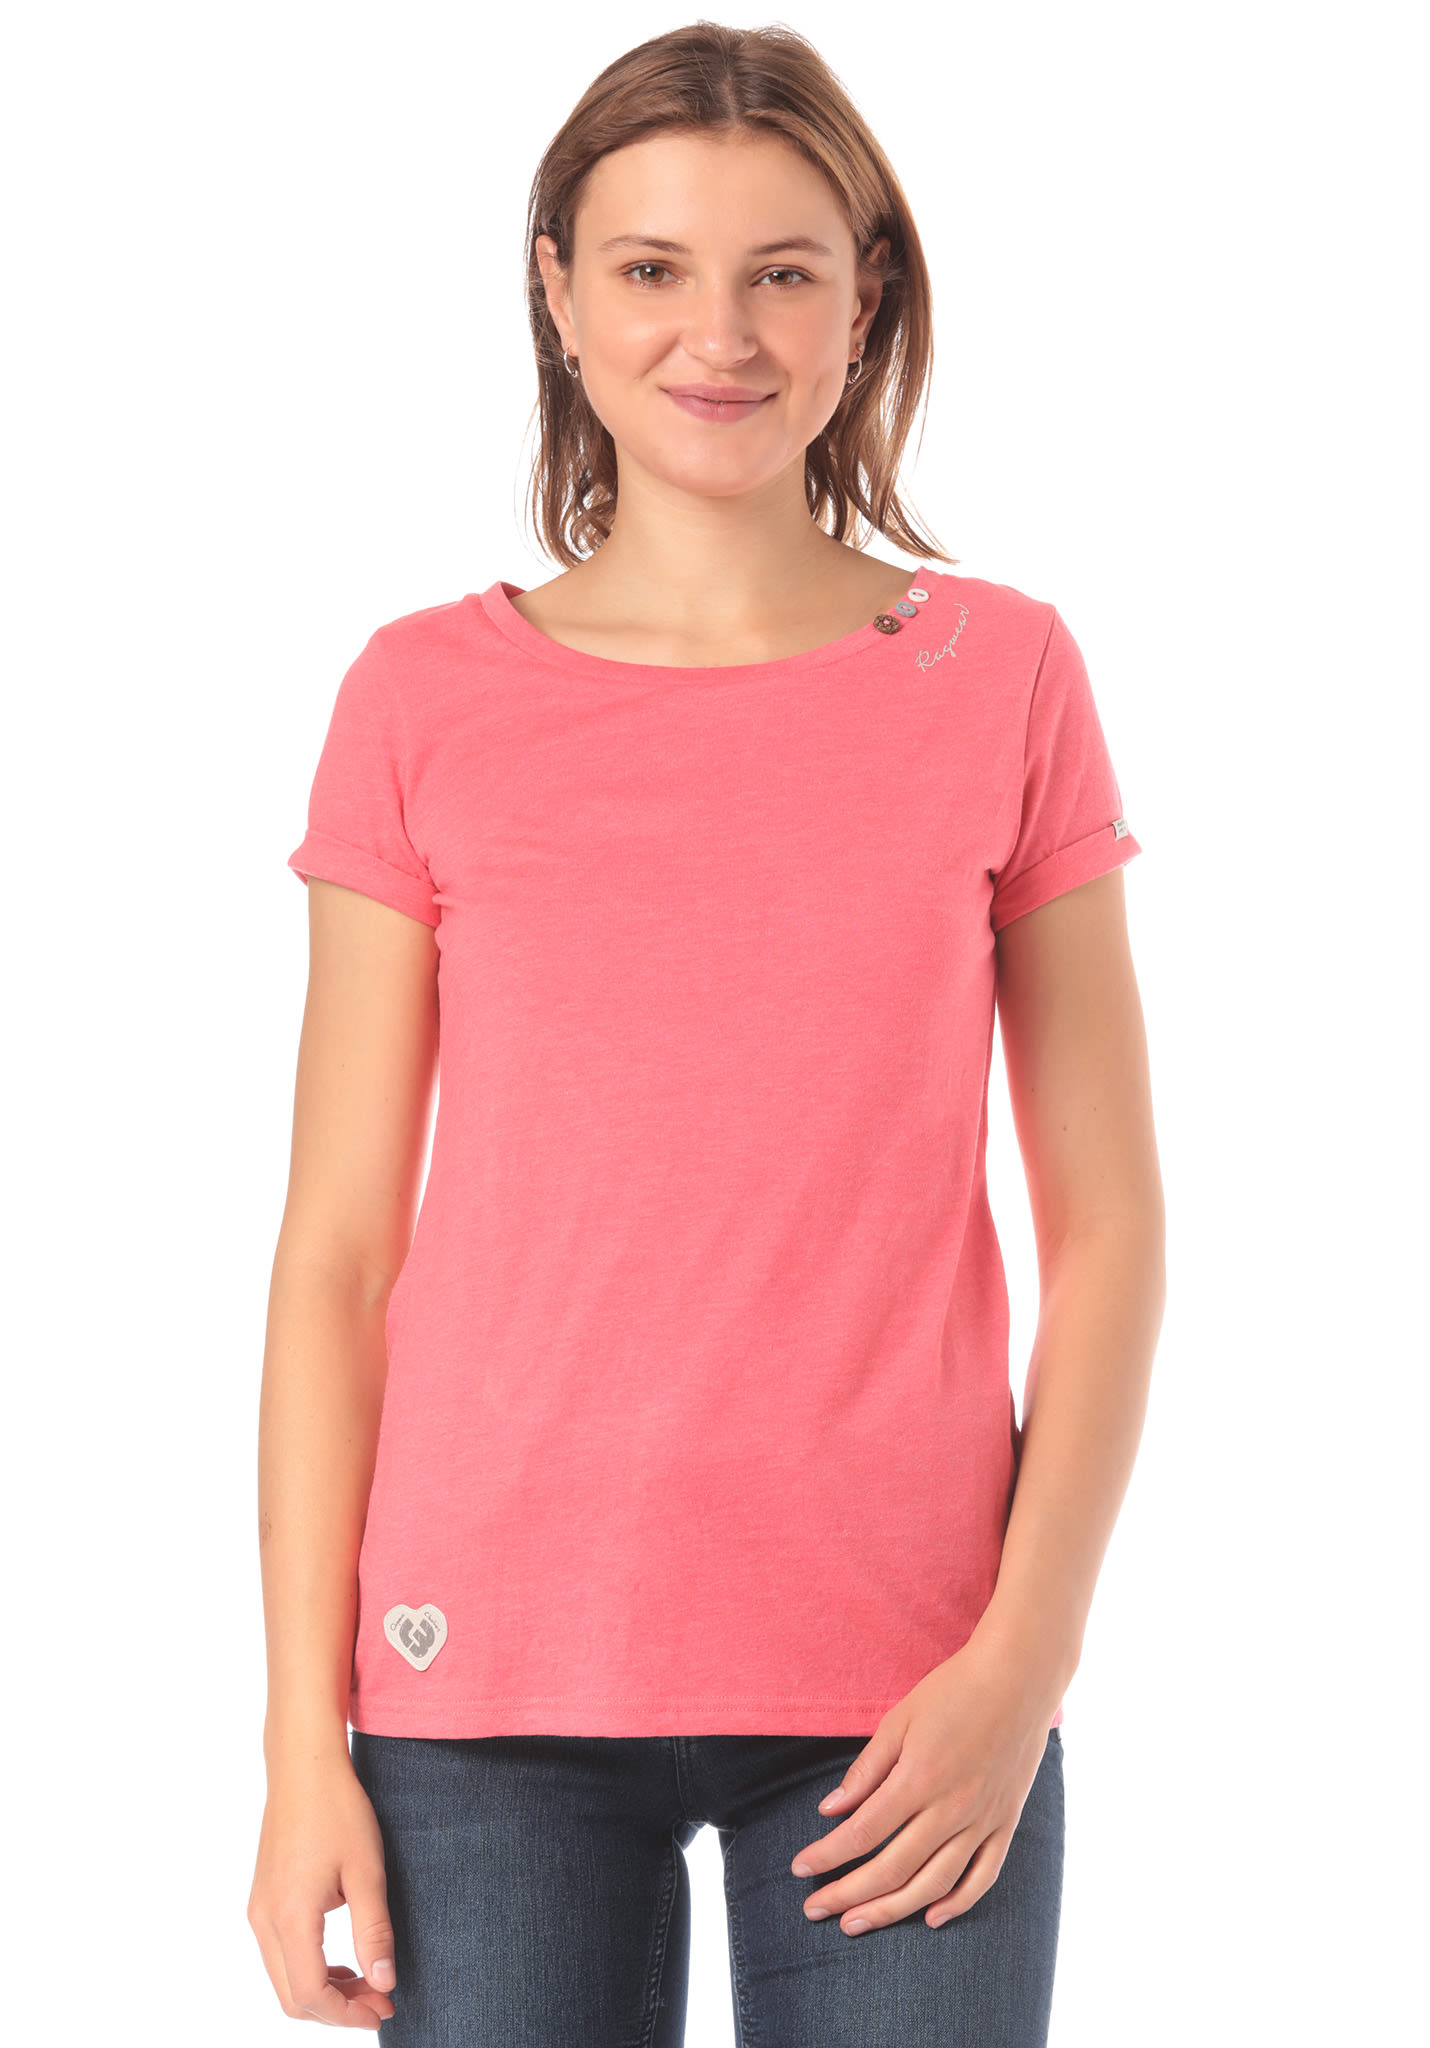 2c9baa3e0281 ragwear Florah Organic - T-Shirt for Women - Pink - Planet Sports